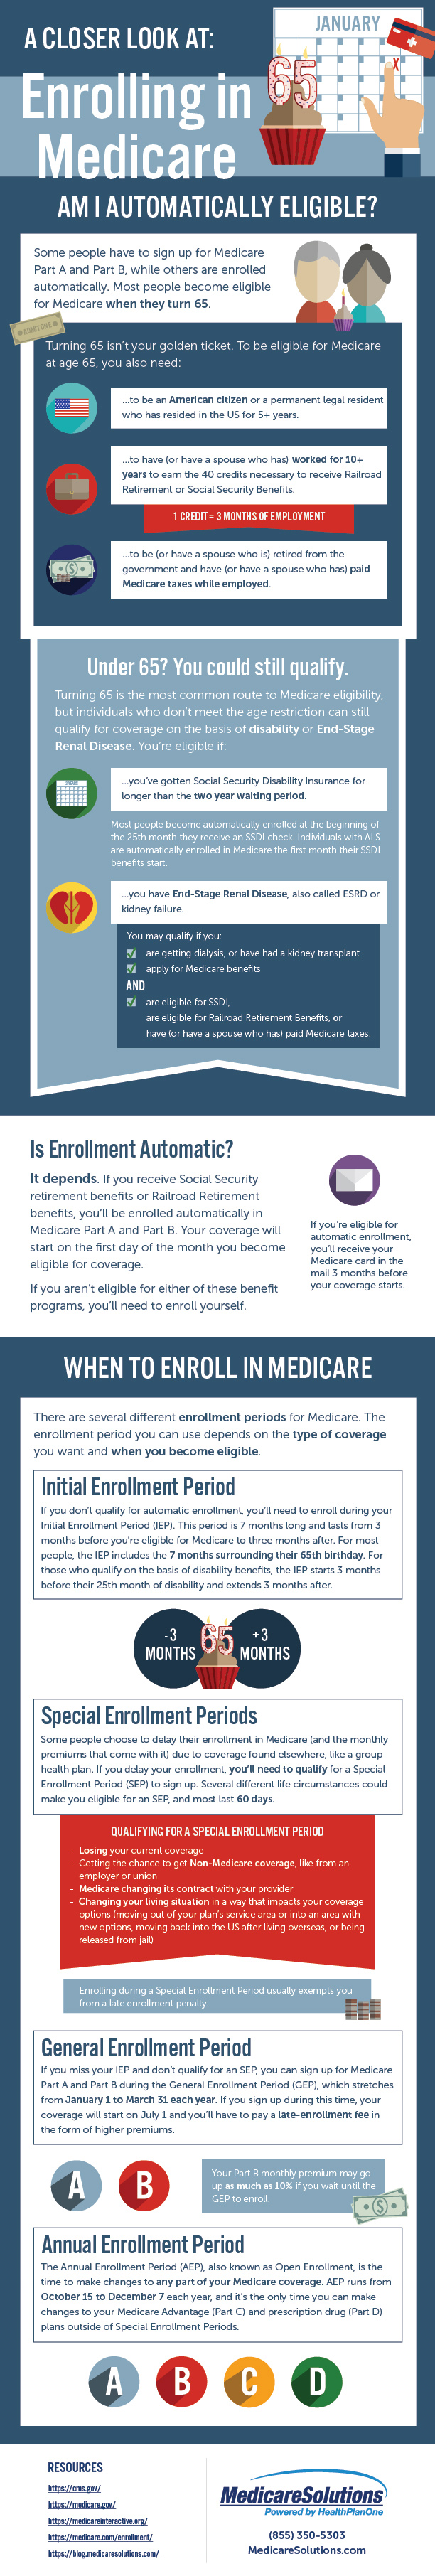 A closer look at enrolling in Medicare - Infographic